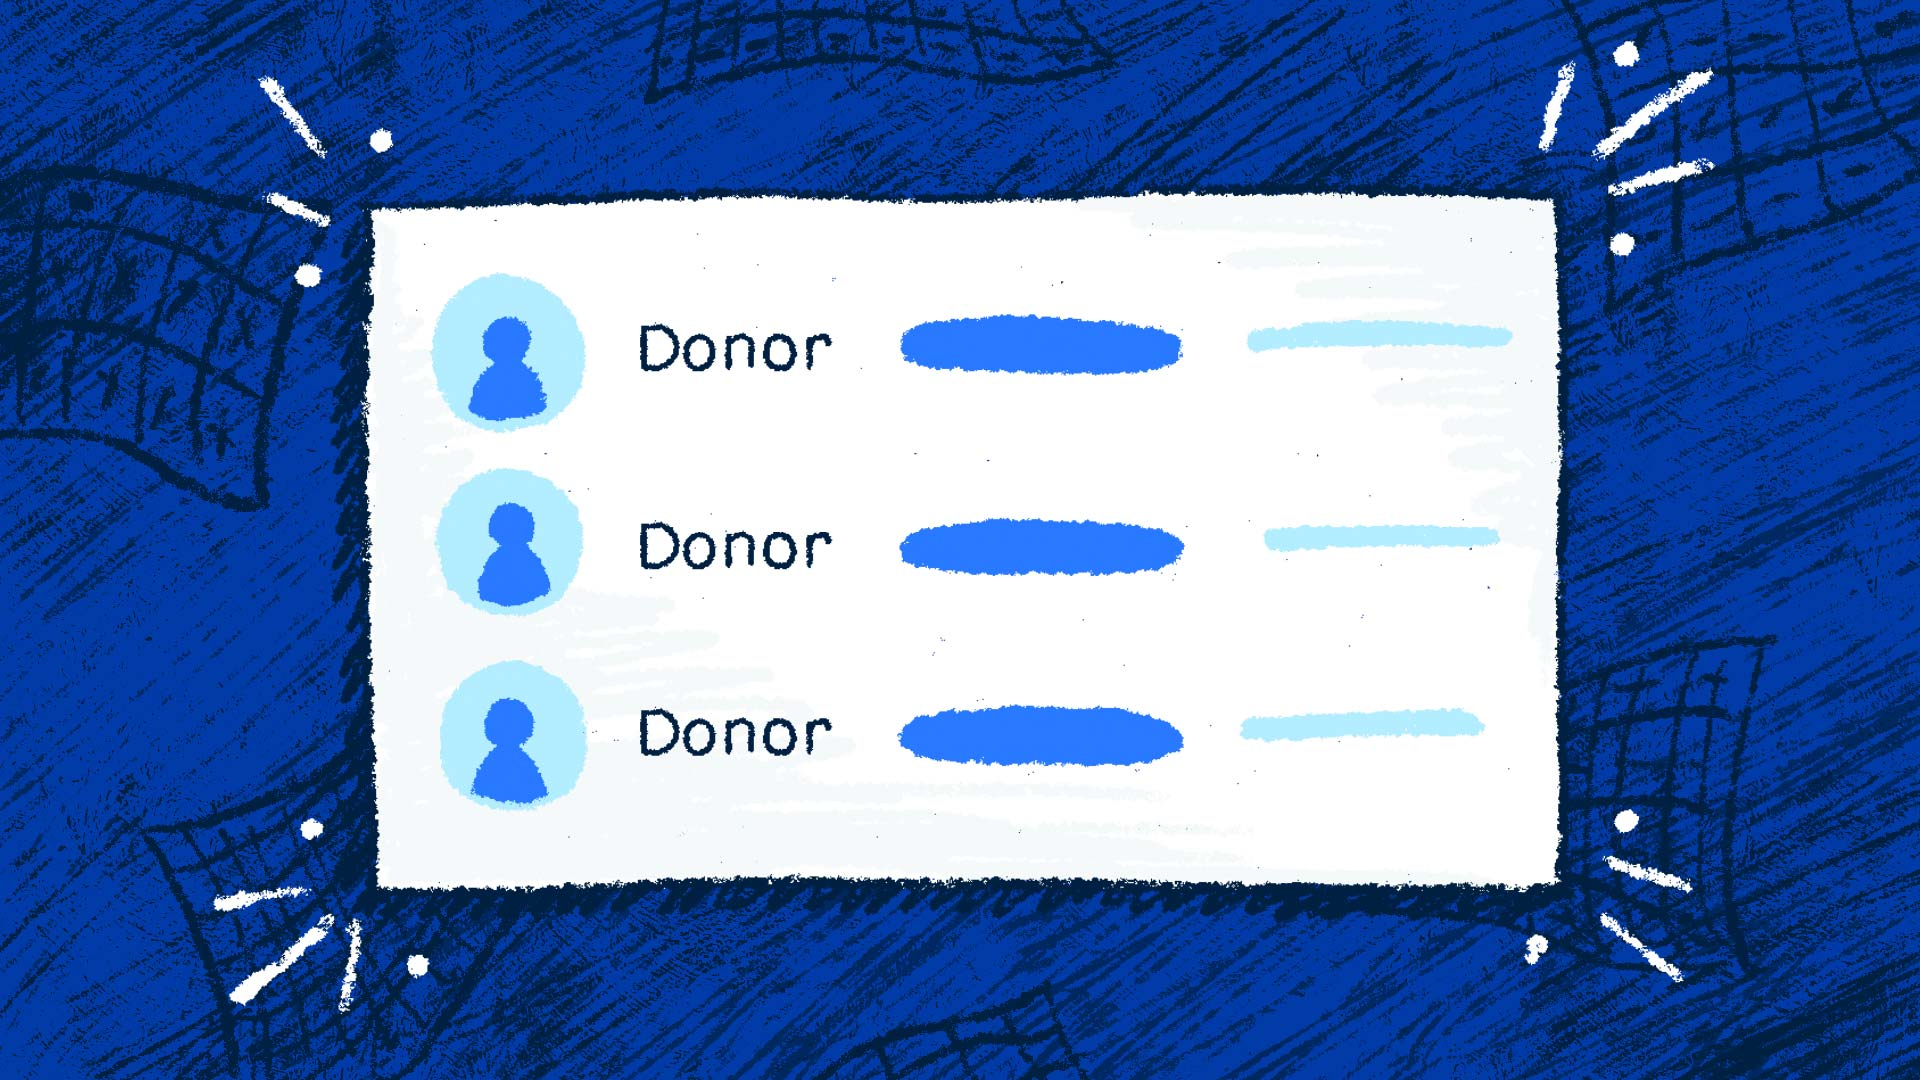 Messy spreadsheets fade into the dark background, and a tidy list of supporters' names comes forward—it's an efficient, easy-to-use nonprofit CRM, here to make your life much easier.